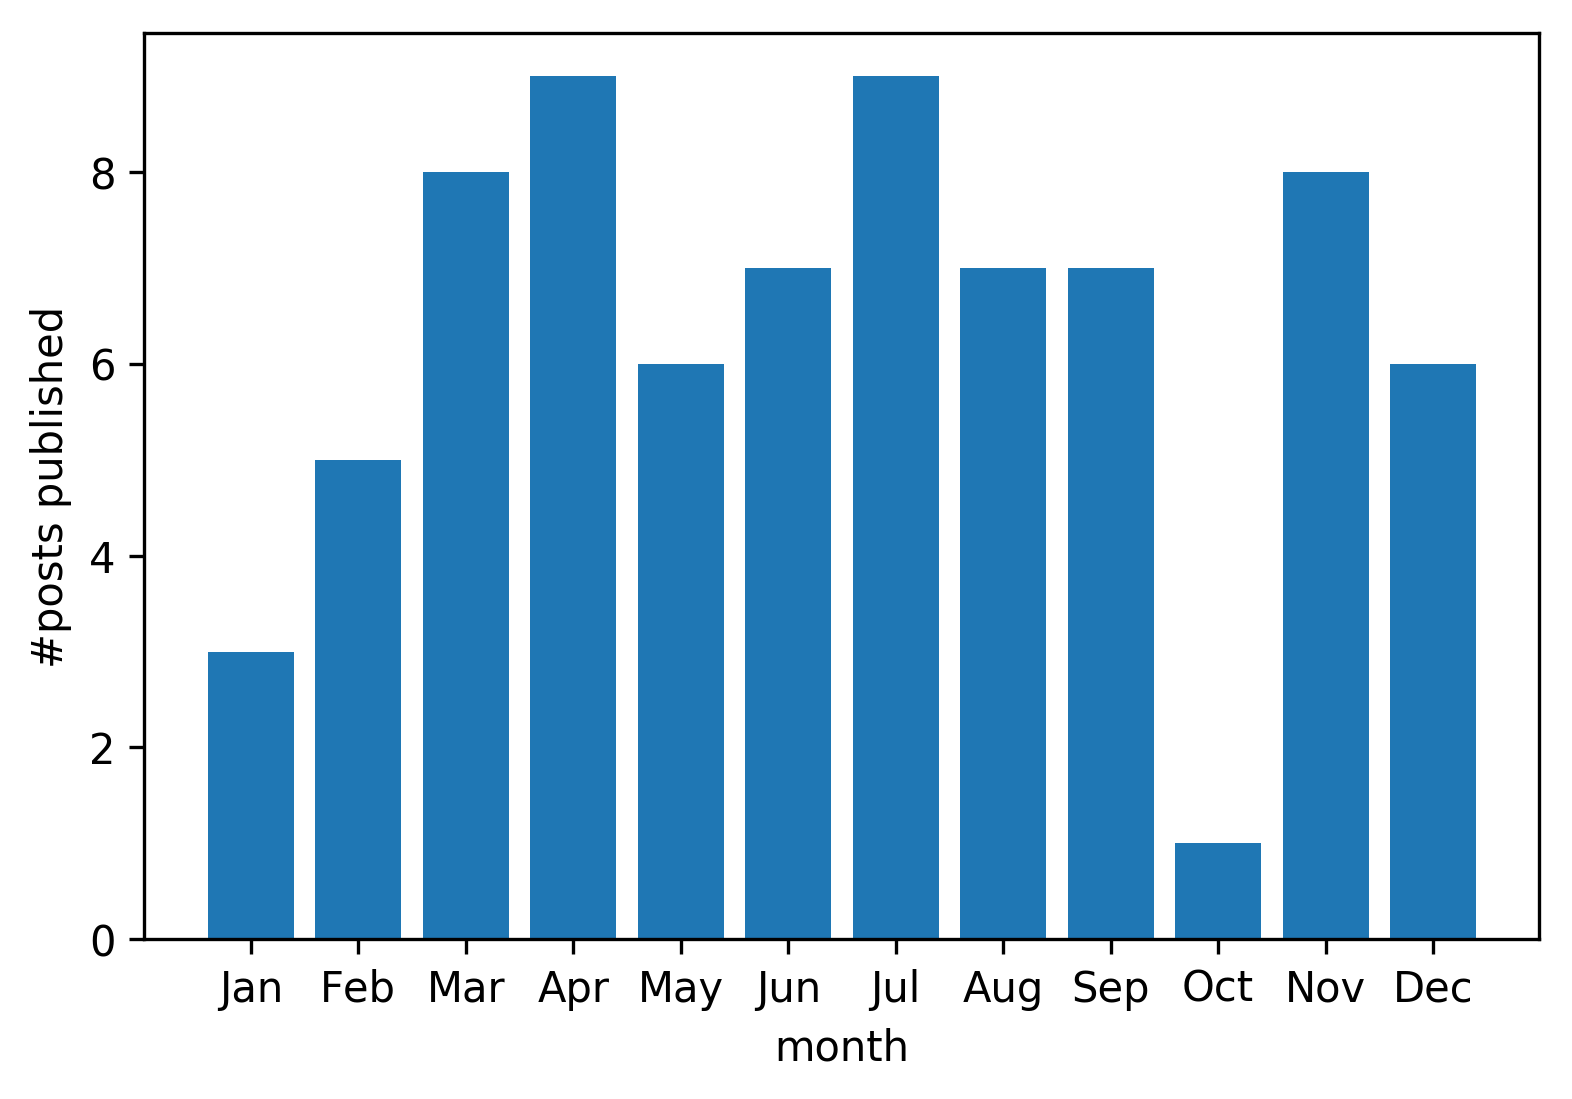 Bar plot of #posts published per month